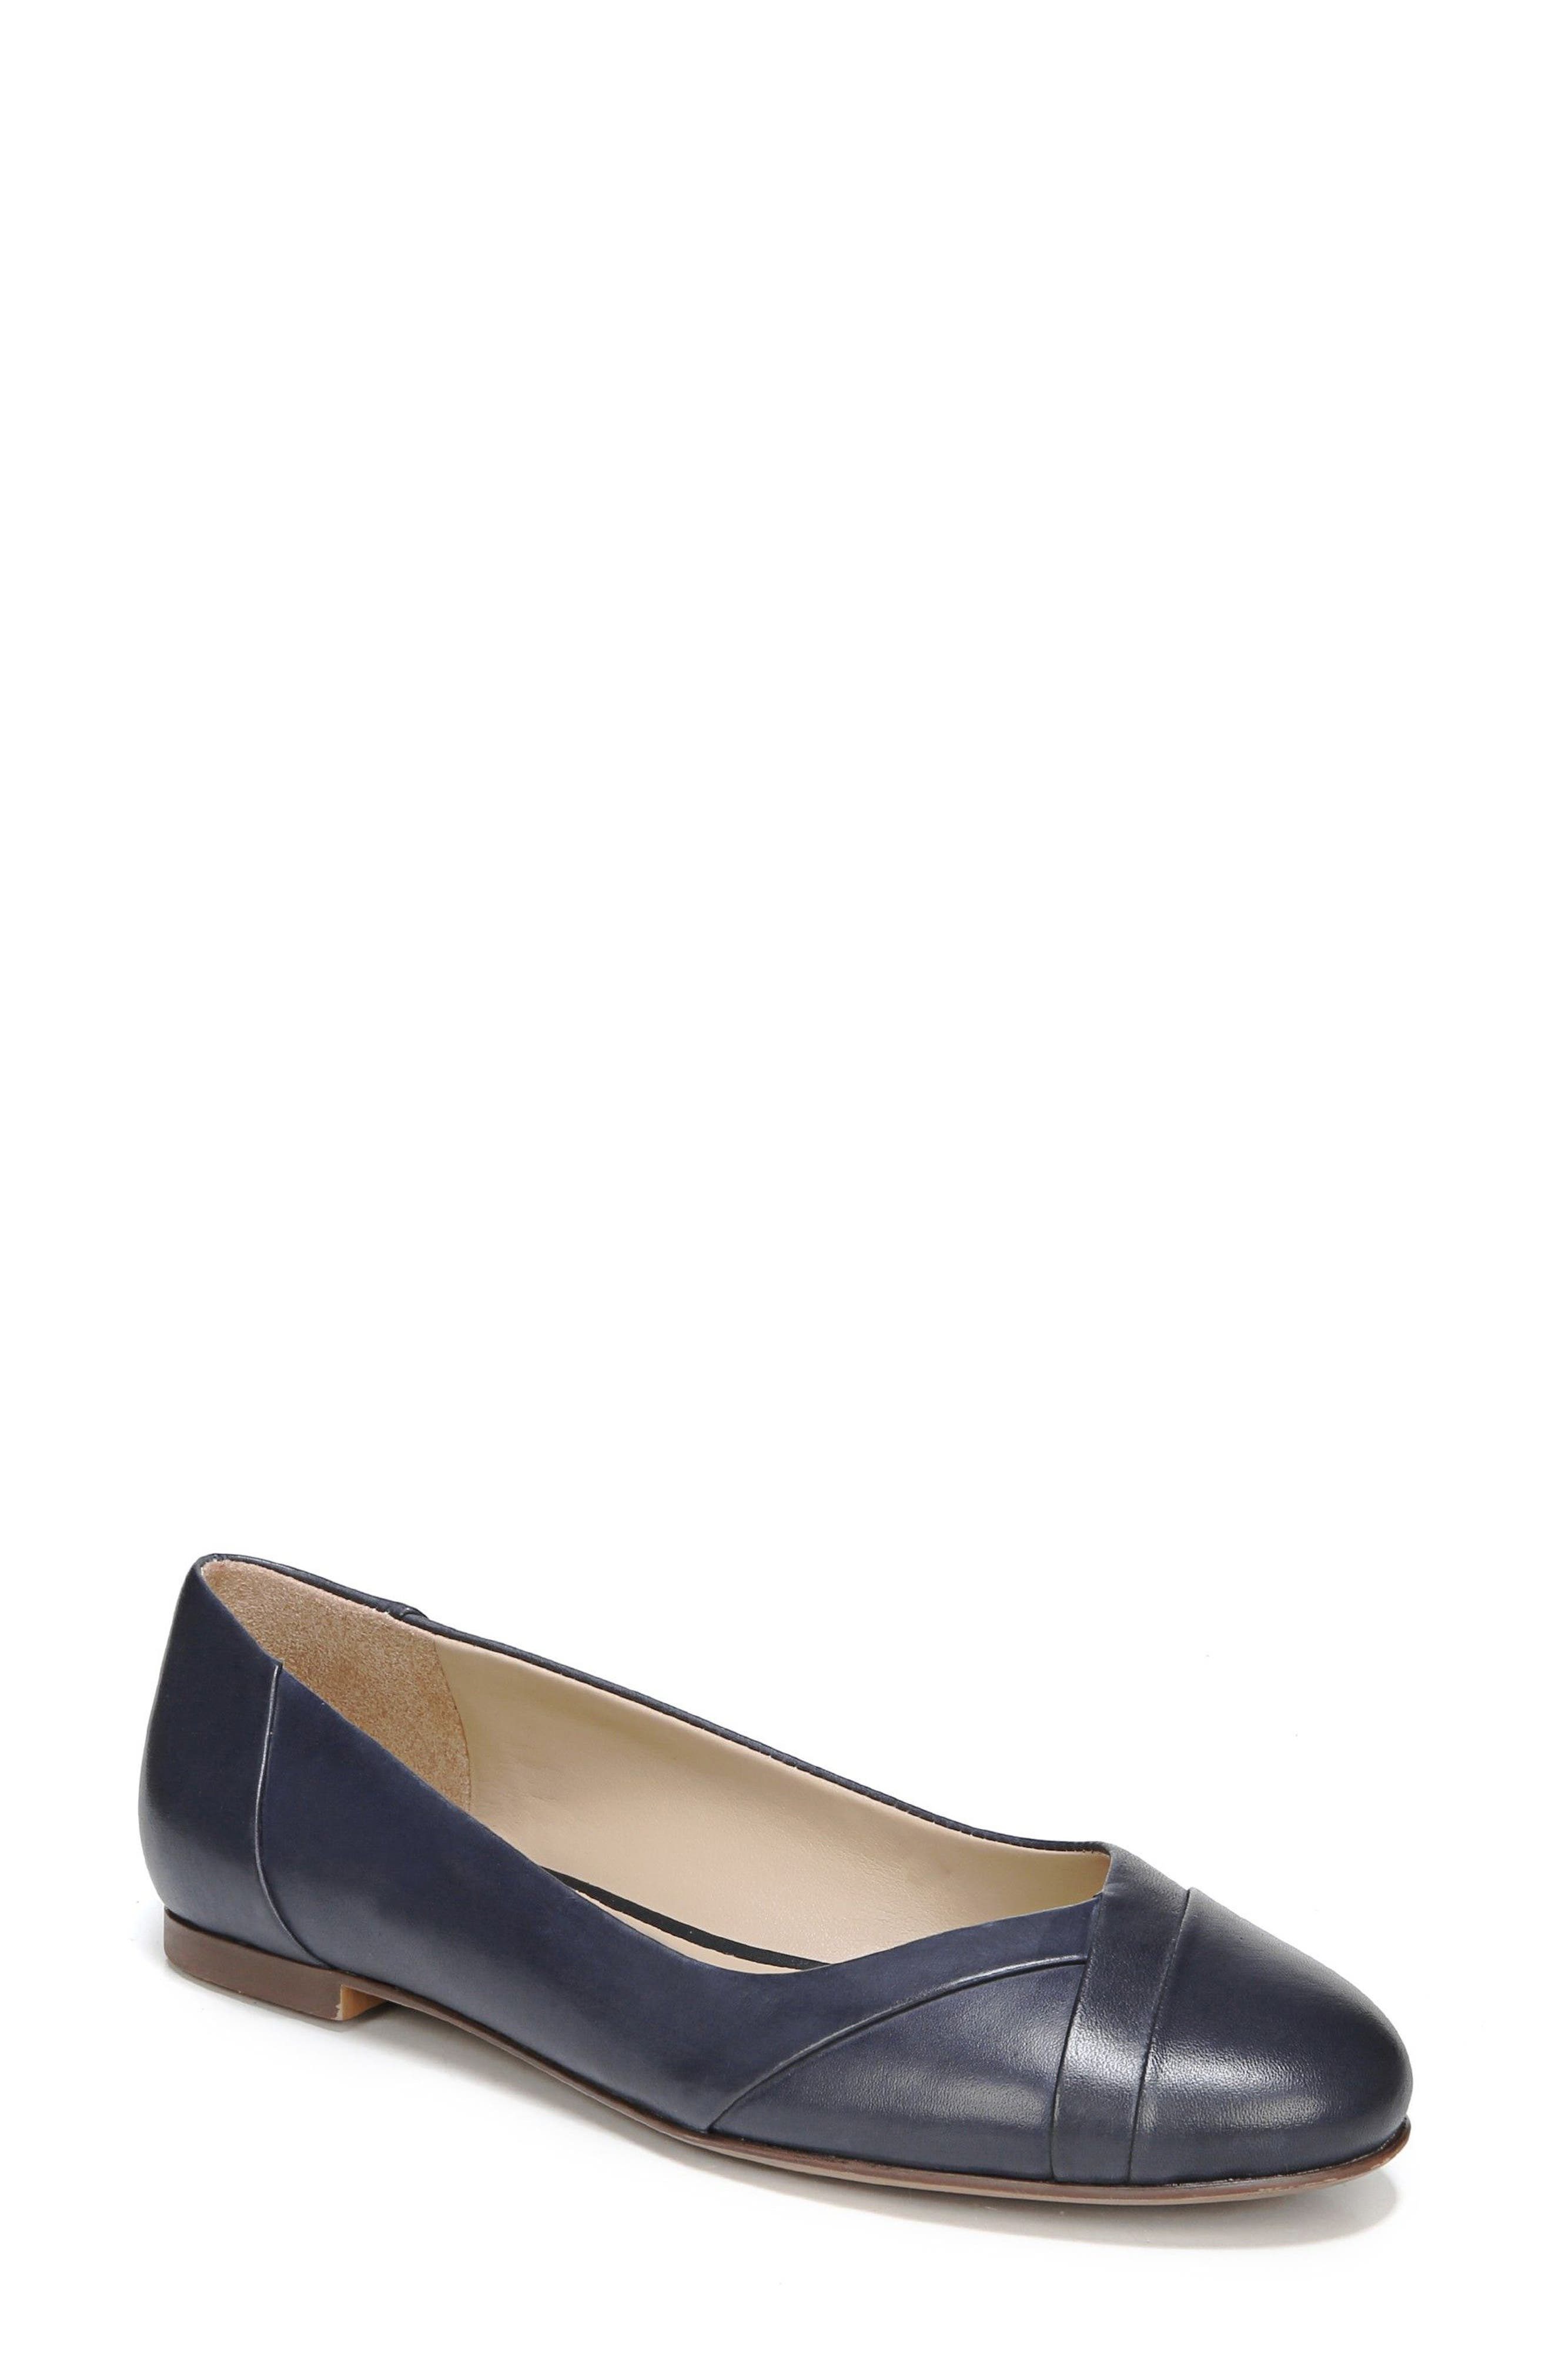 Gilly Flat,                             Main thumbnail 1, color,                             NAVY LEATHER